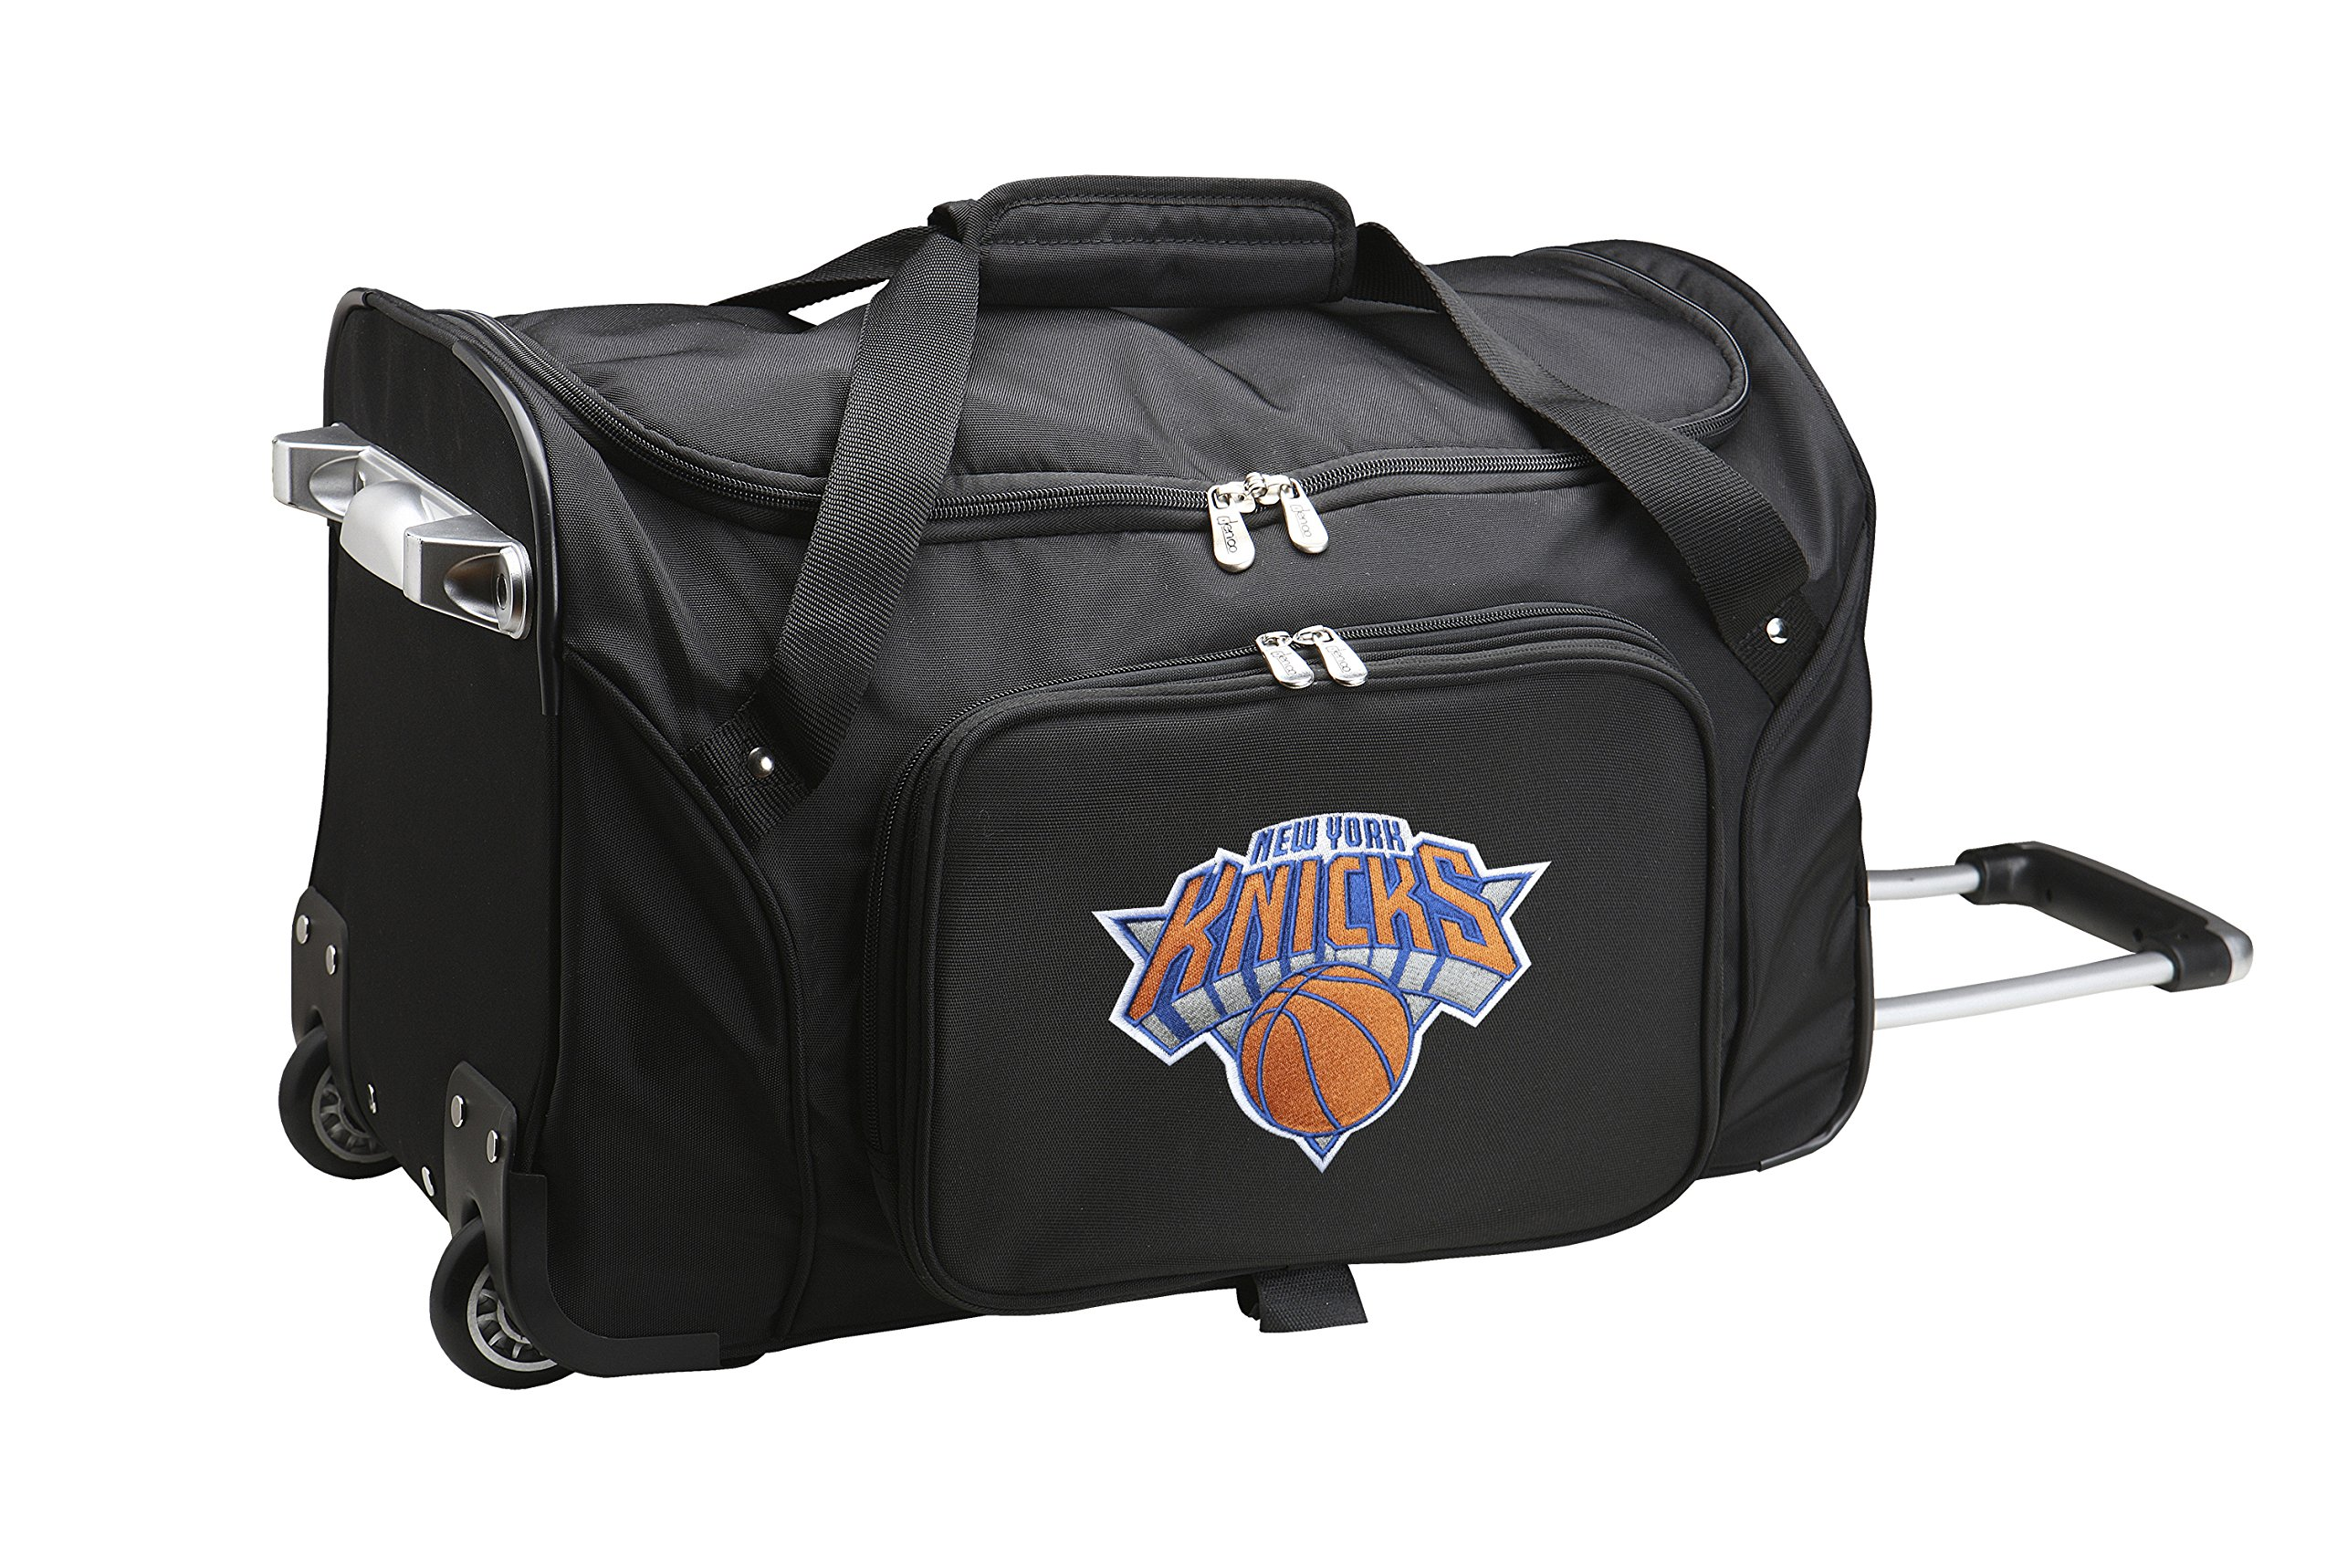 NBA New York Knicks Wheeled Duffle Bag, 22 x 12 x 5.5'', Black